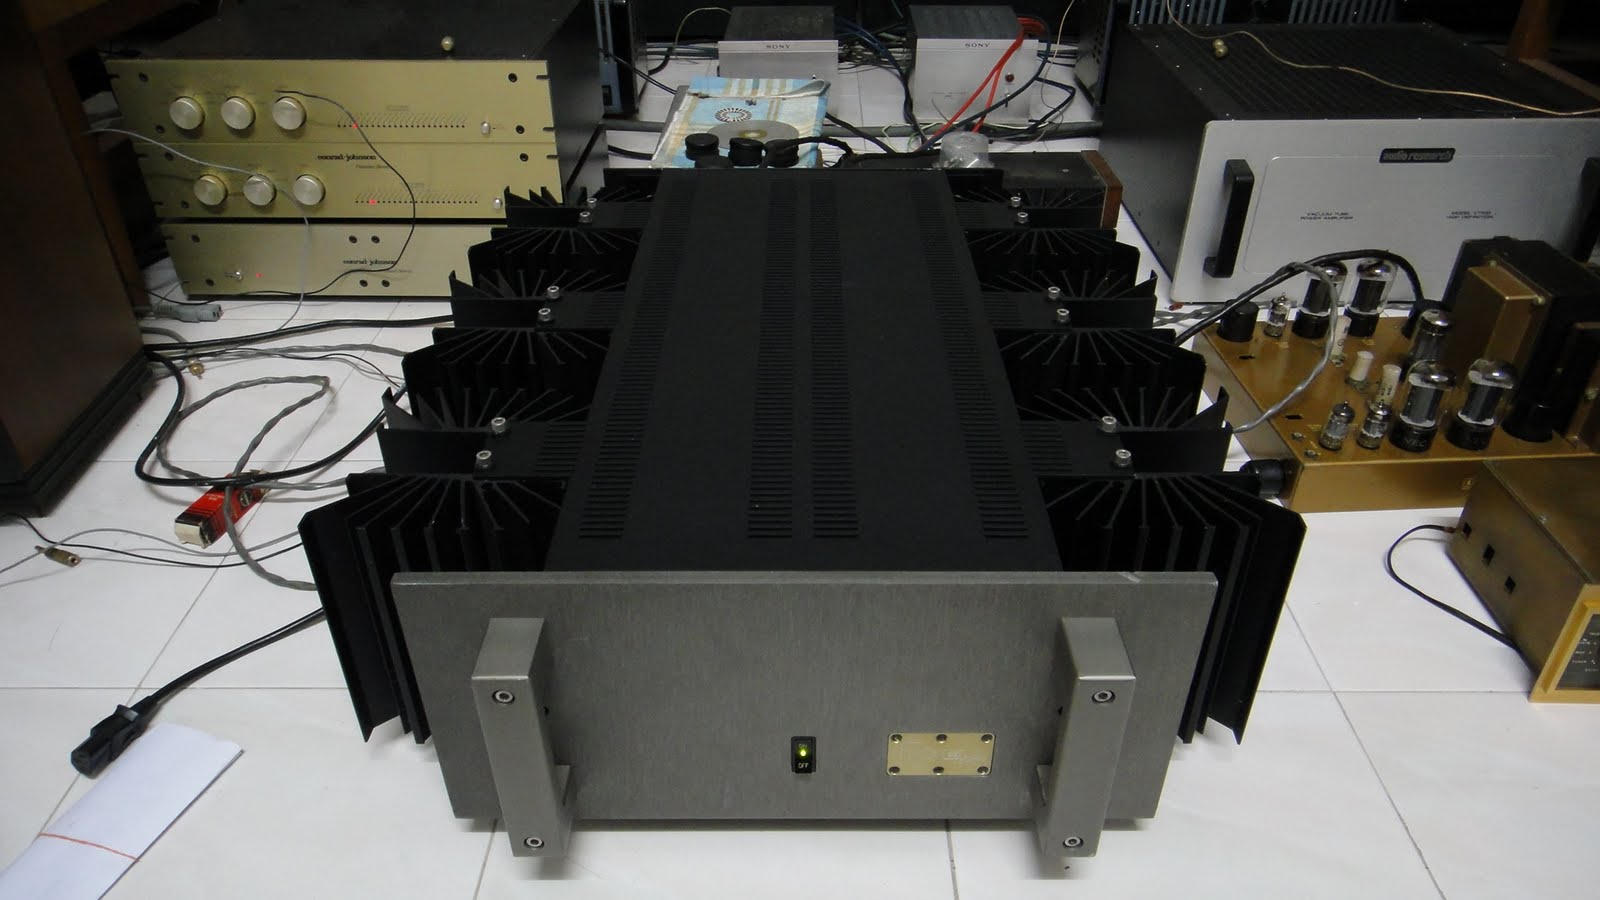 crell amp http://loyhifi.blogspot.com/2011/09/krell-ksa-200b-power-amplifier-used.html